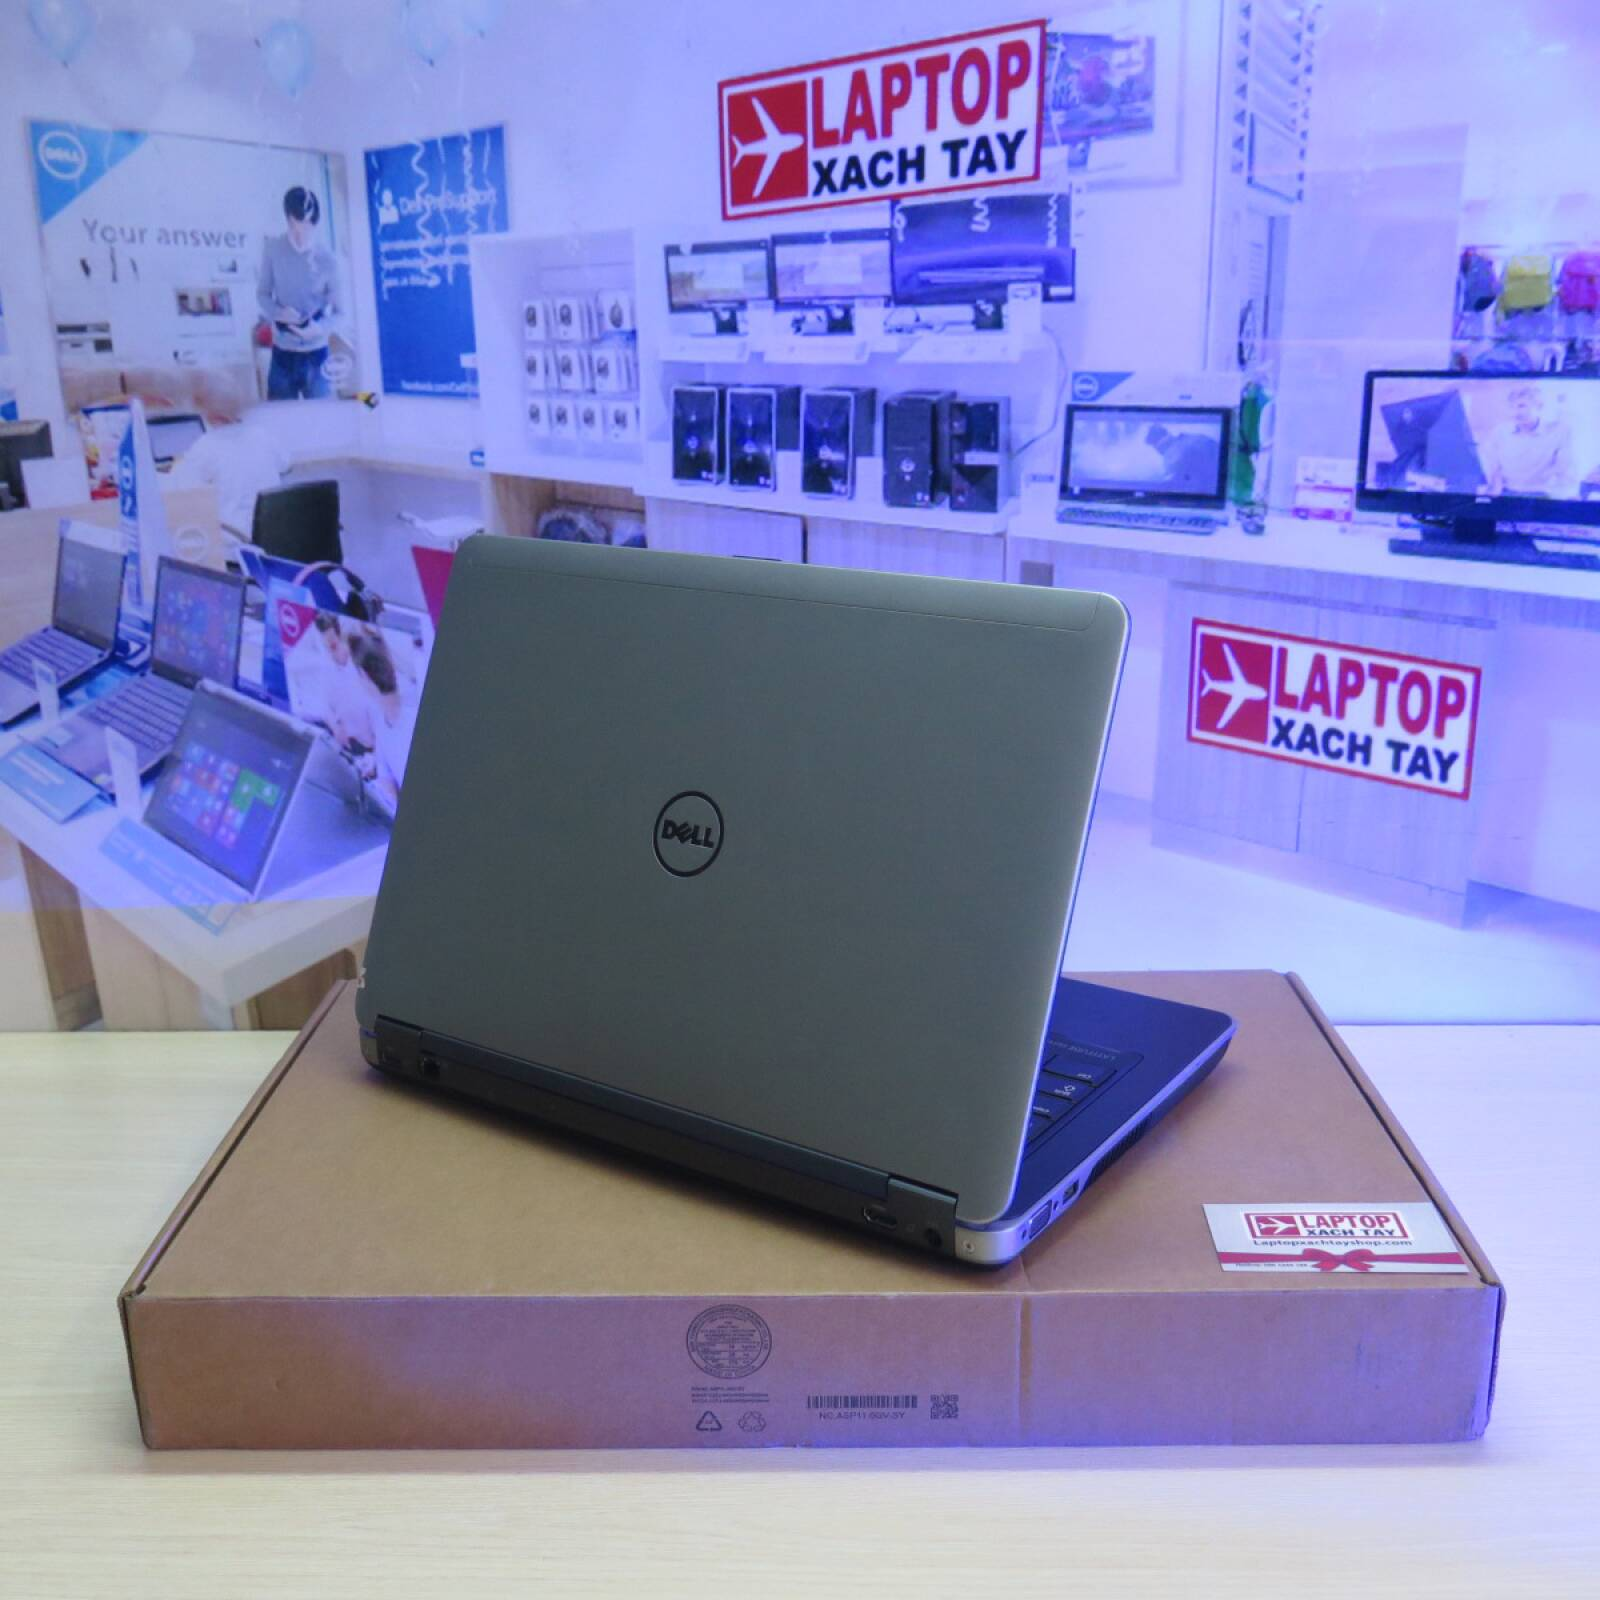 Dell Latitude E6440 - Laptopxachtayshop.com